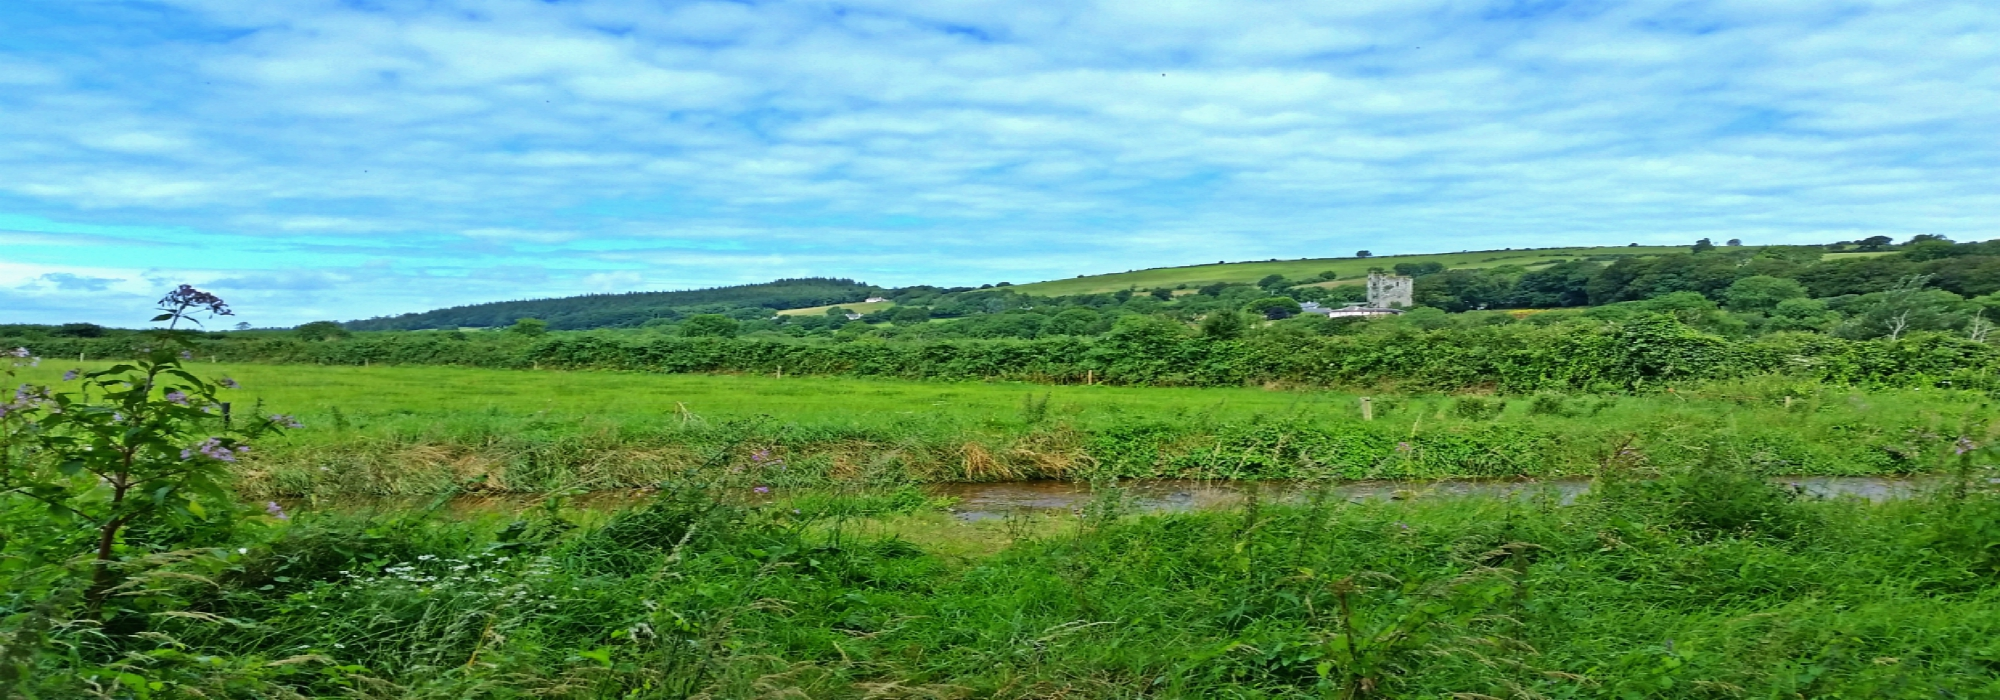 West Waterford Agricultural Land